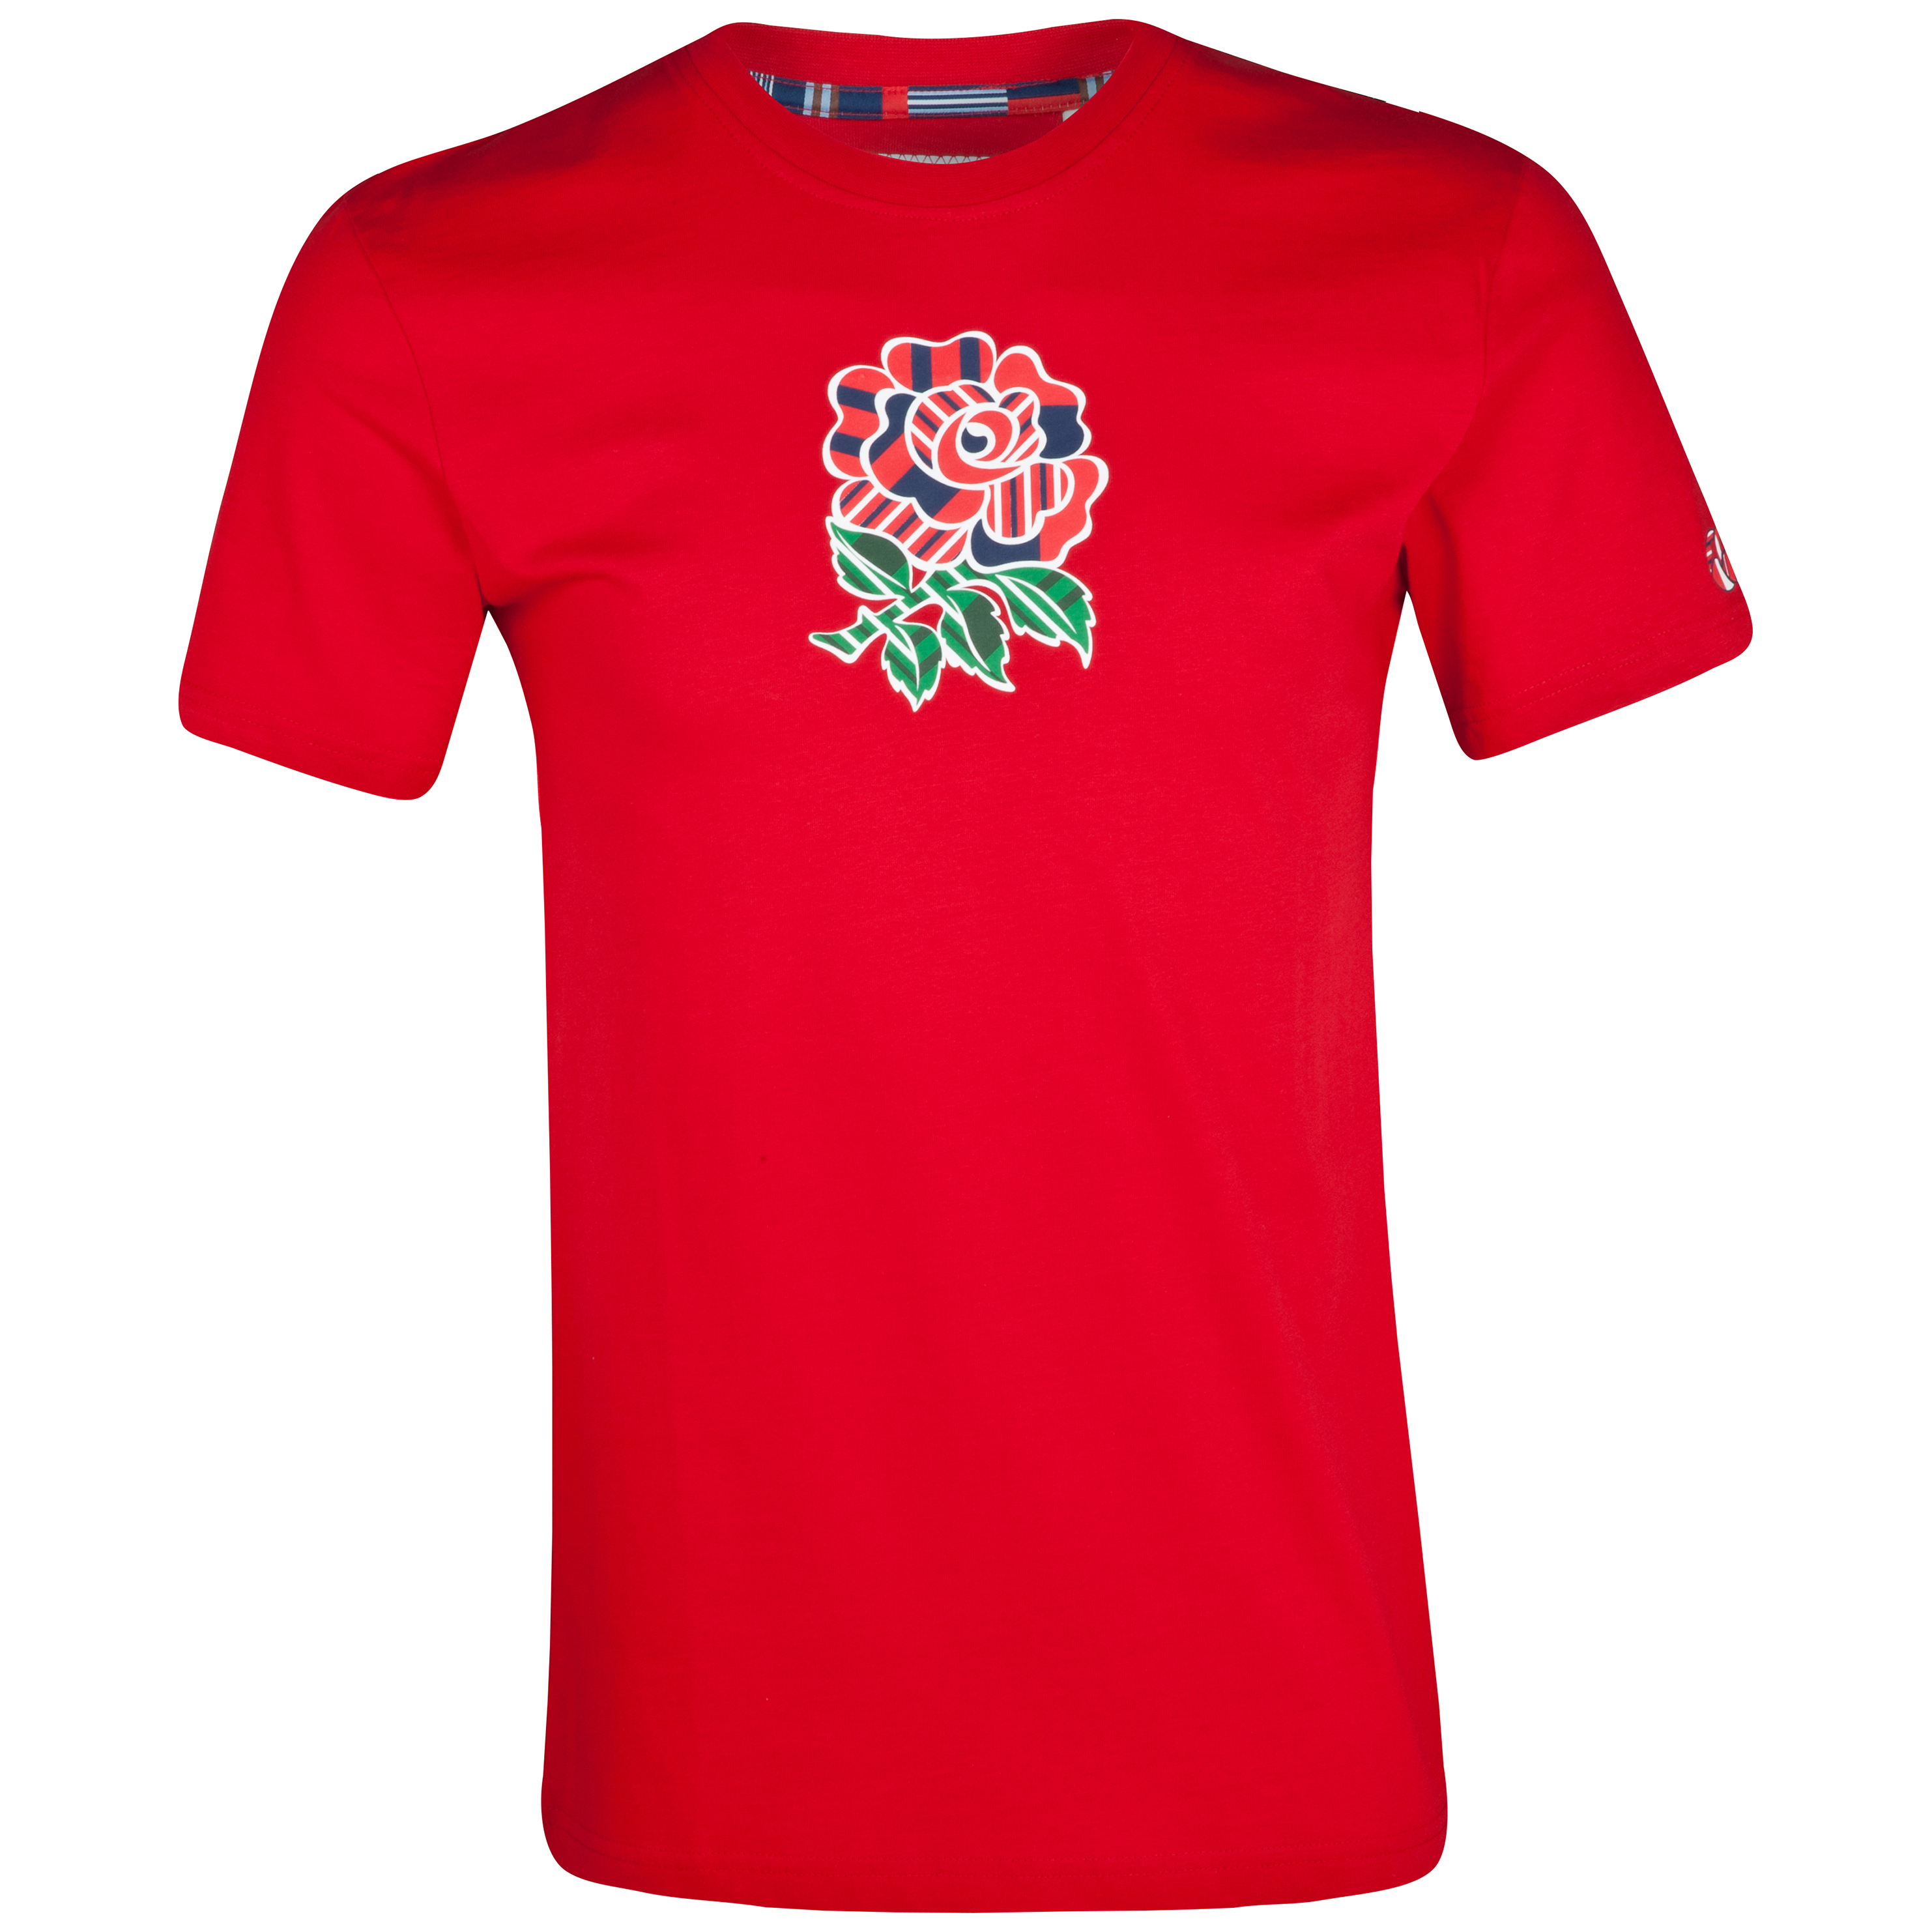 England Uglies Cotton T-Shirt - Flag Red